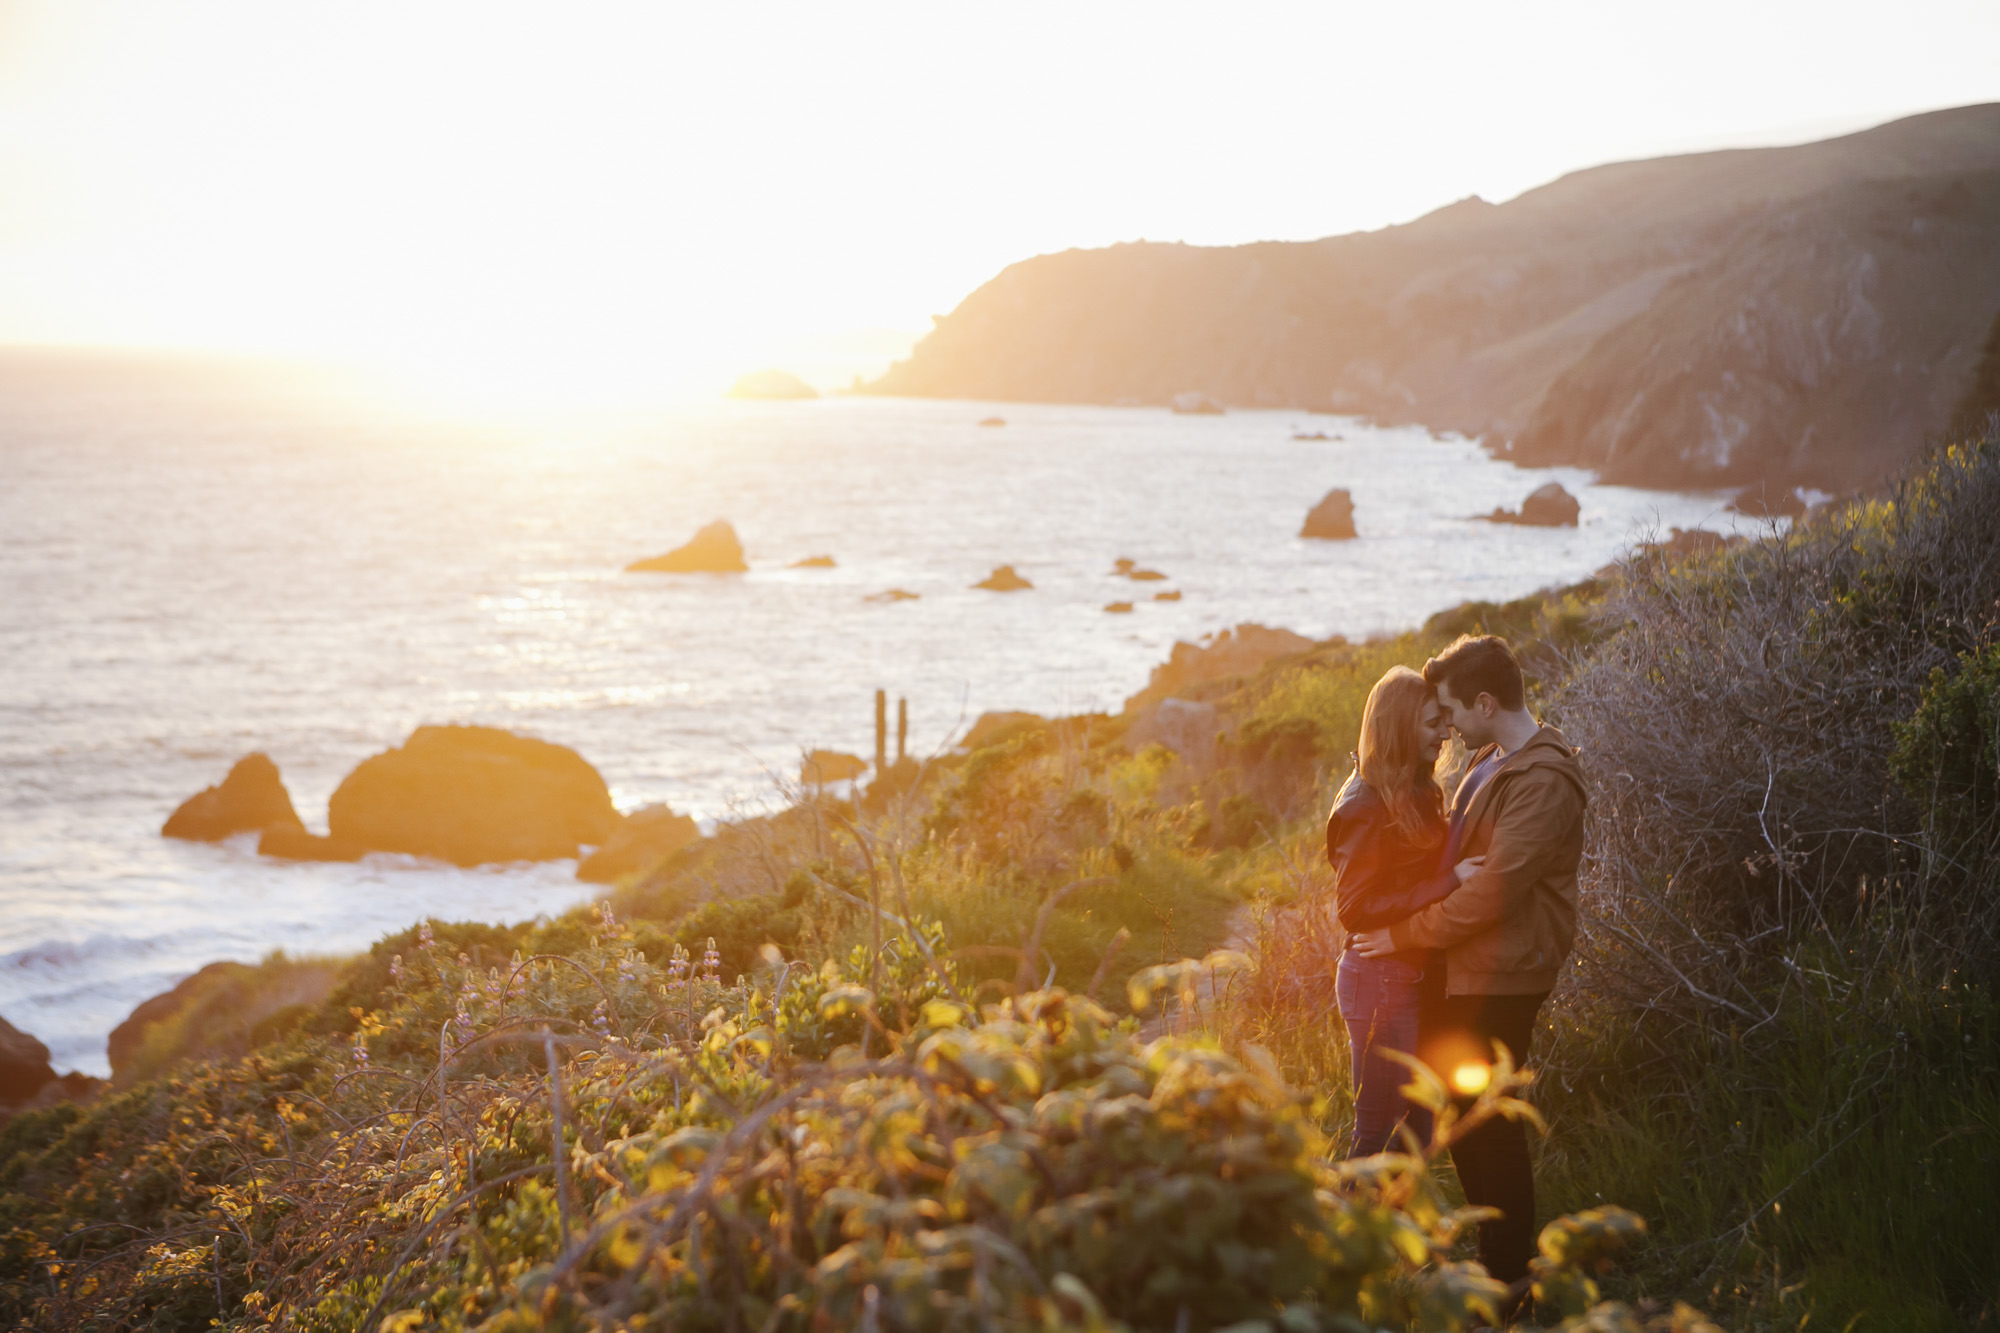 Engagement session at sunset taken on a trail at Slide Ranch in Marin